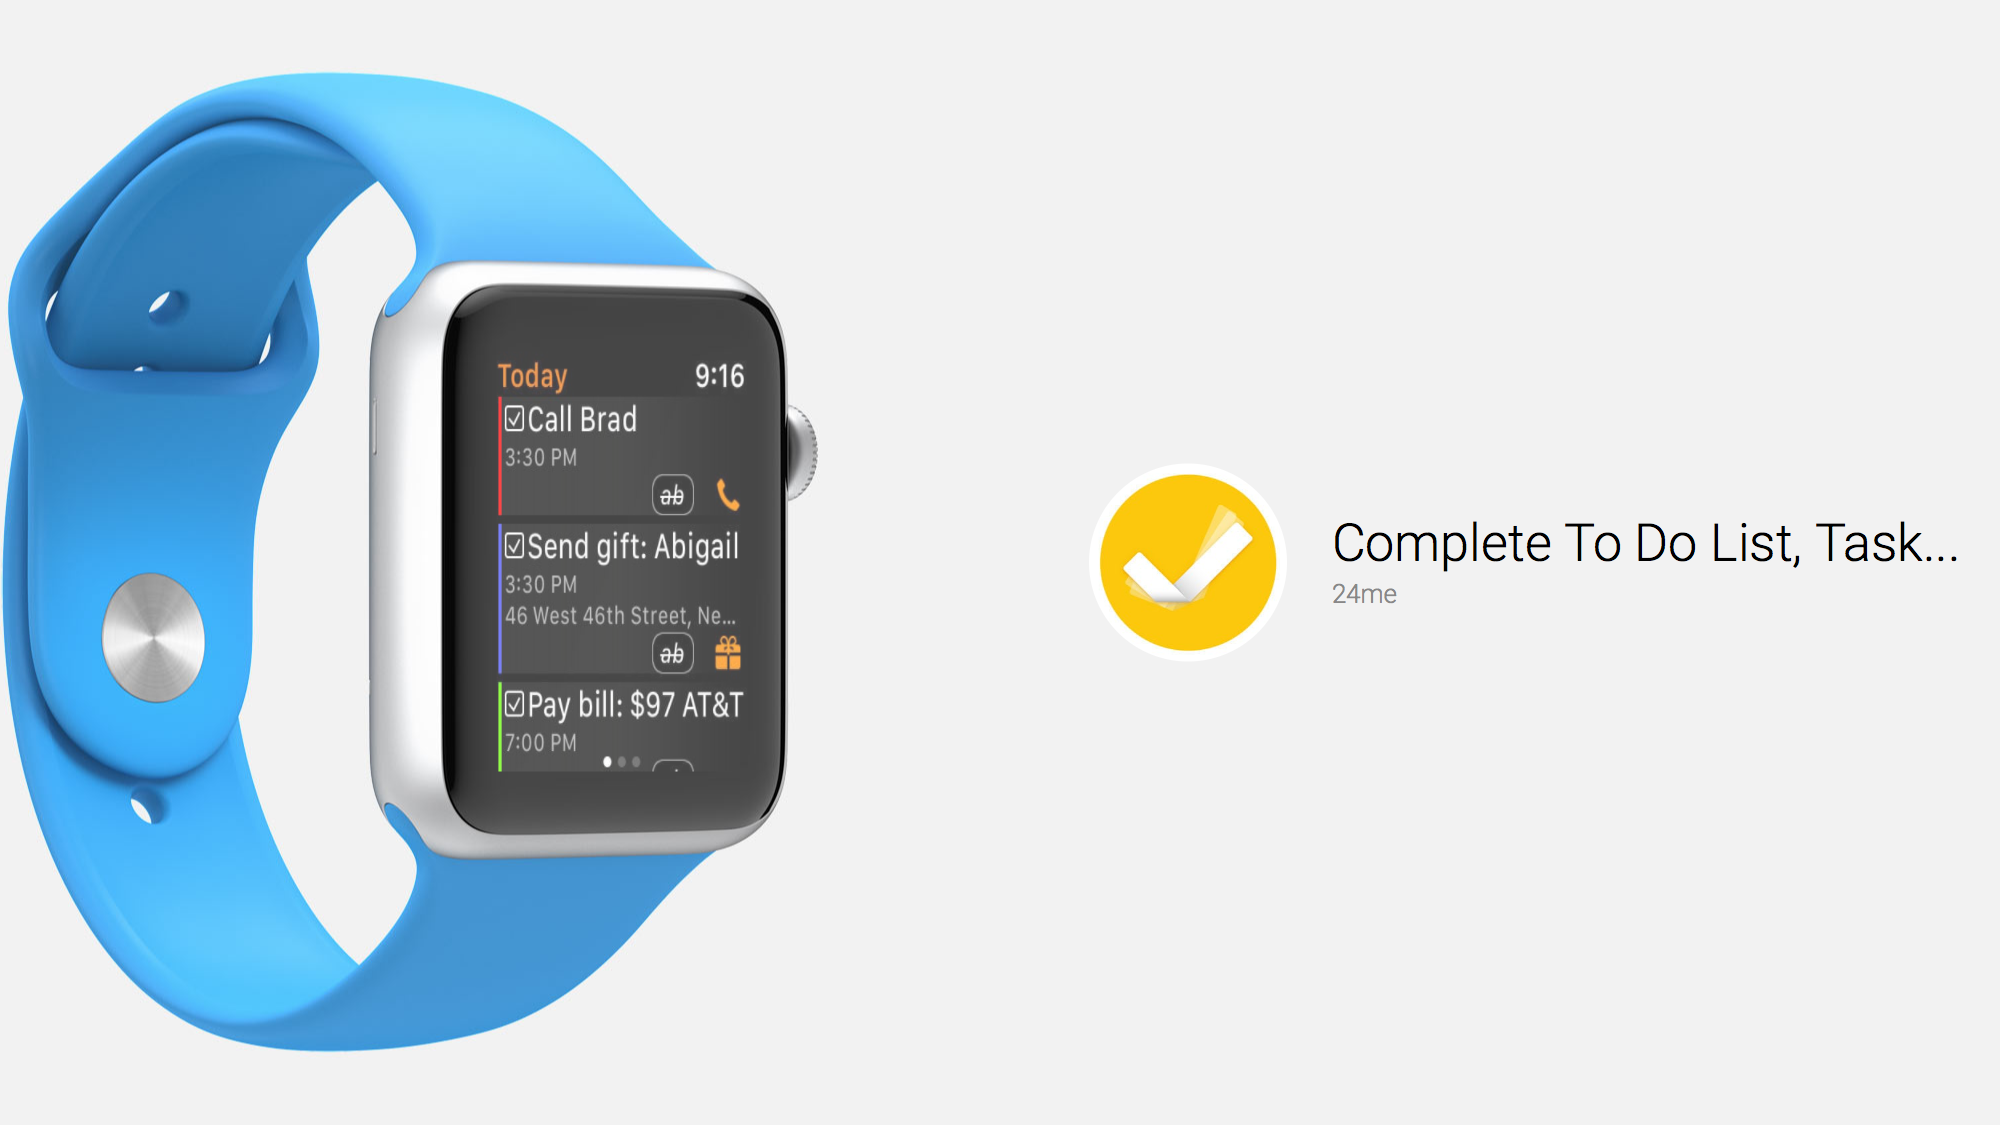 Complete is a Detailed, Integrated Task Management App